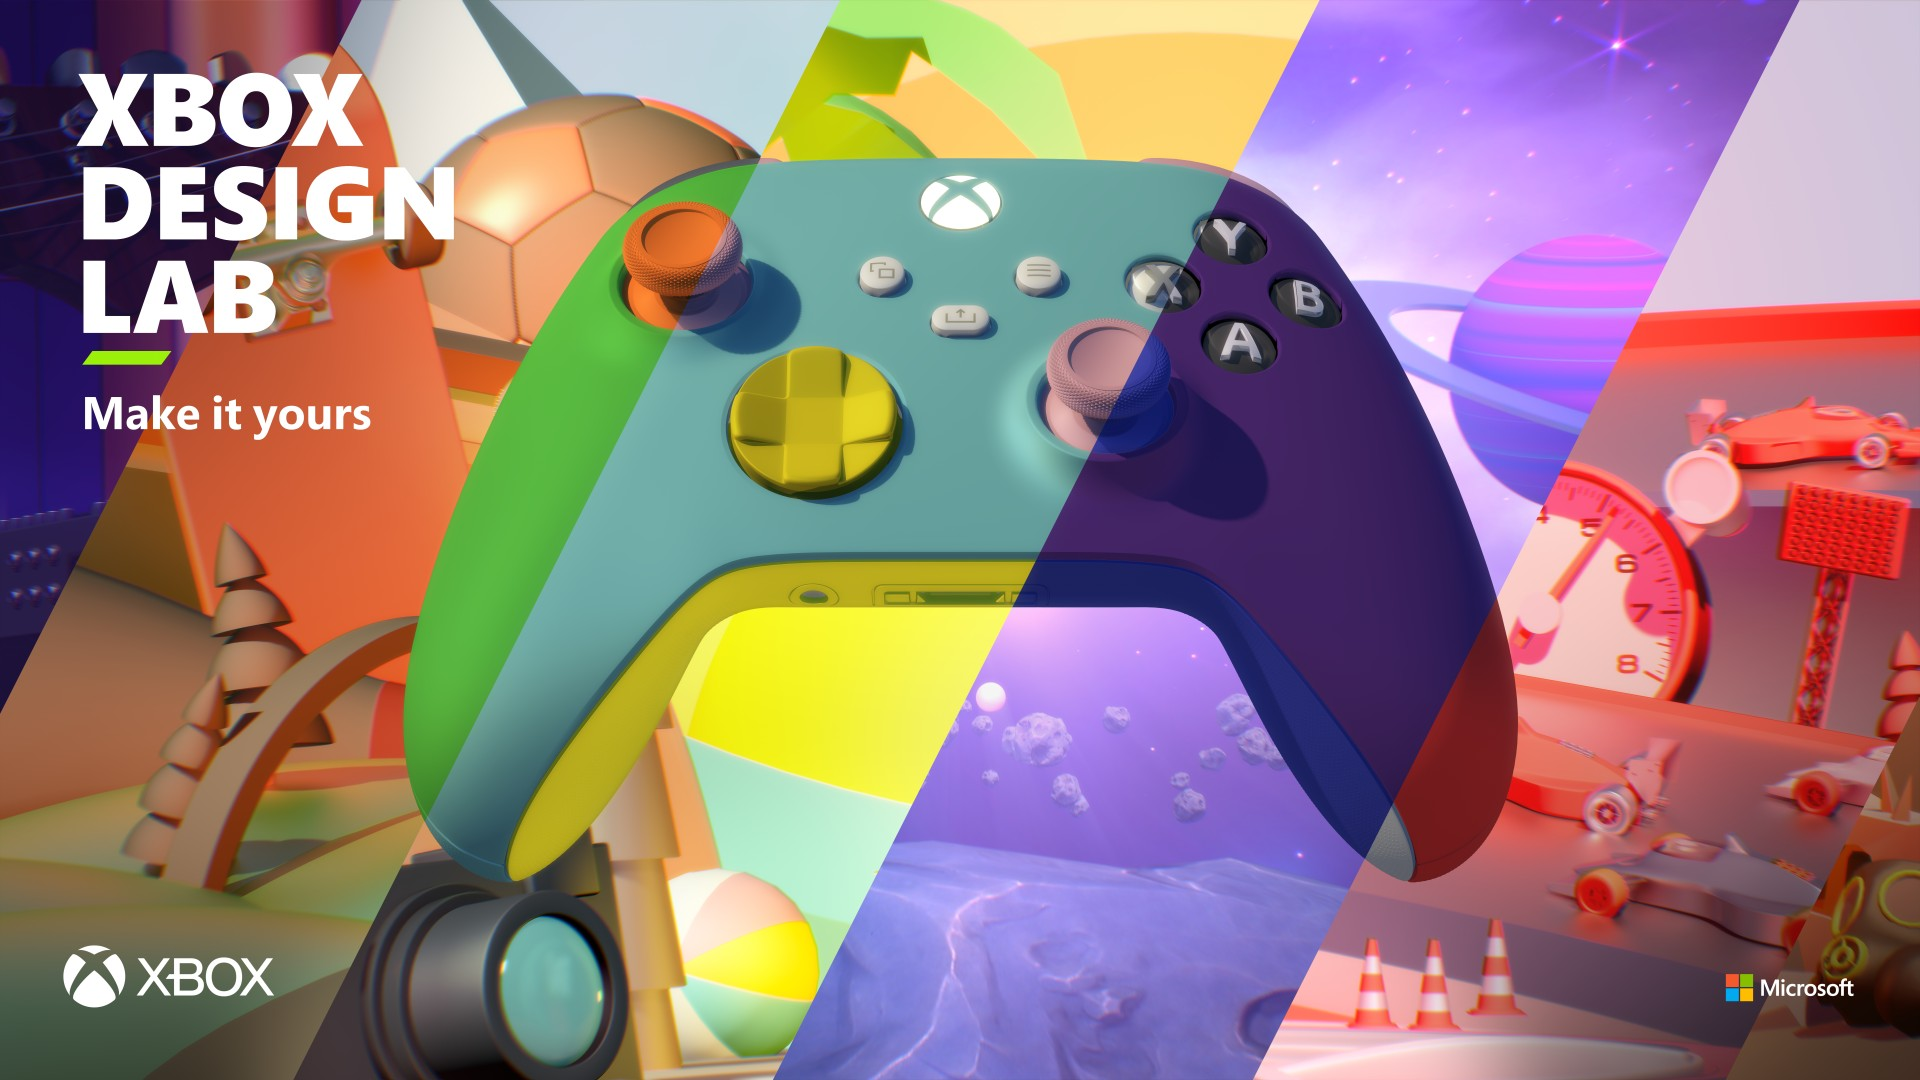 Xbox Design Lab is Back! Personalize Your Next-Gen Controller and Make It Yours